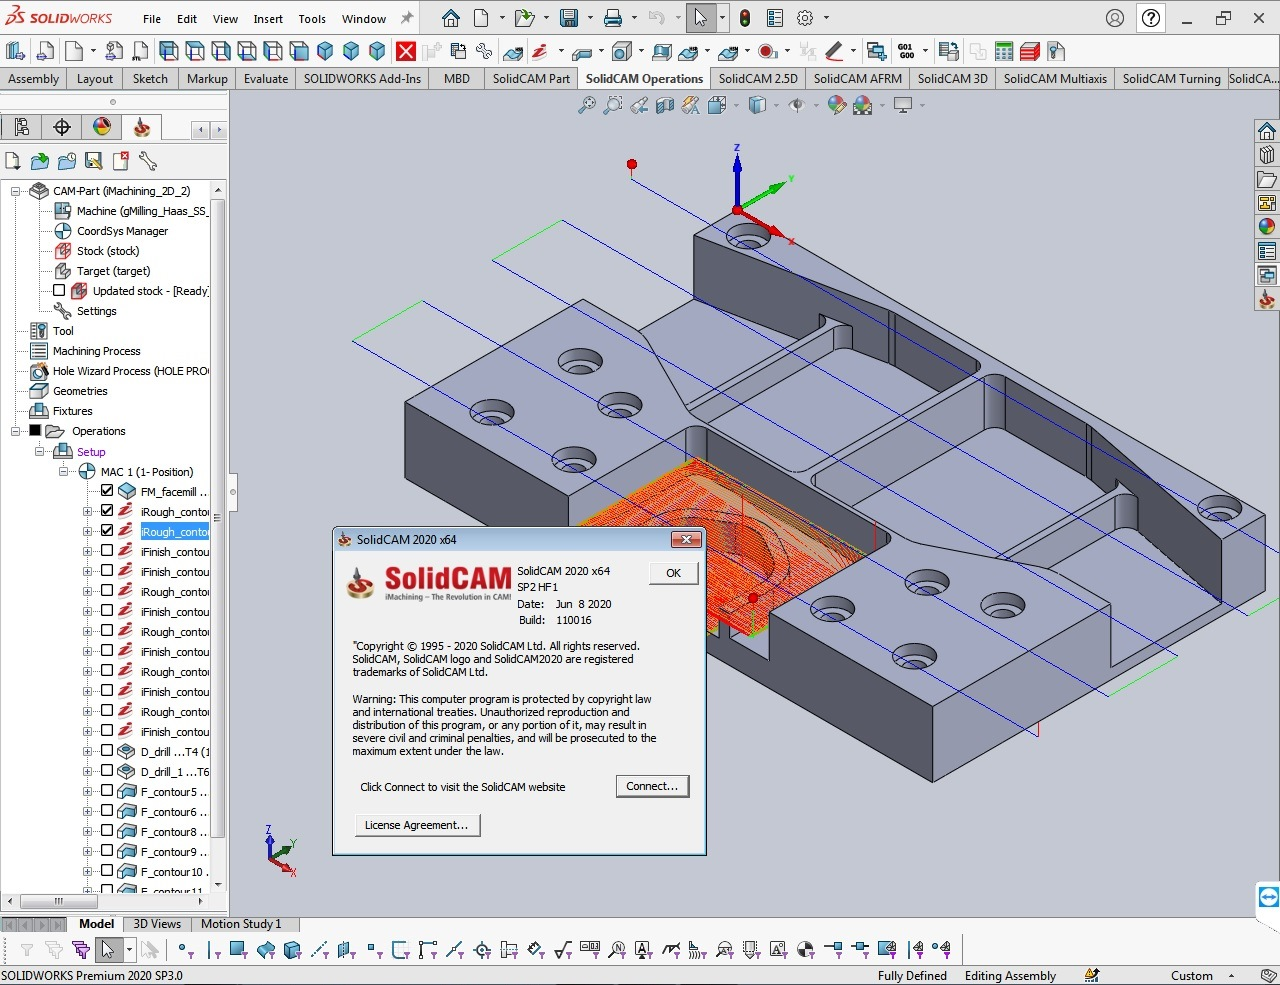 Working with SolidCAM 2020 SP2 HF1 for SolidWorks 2012-2020 x64 full